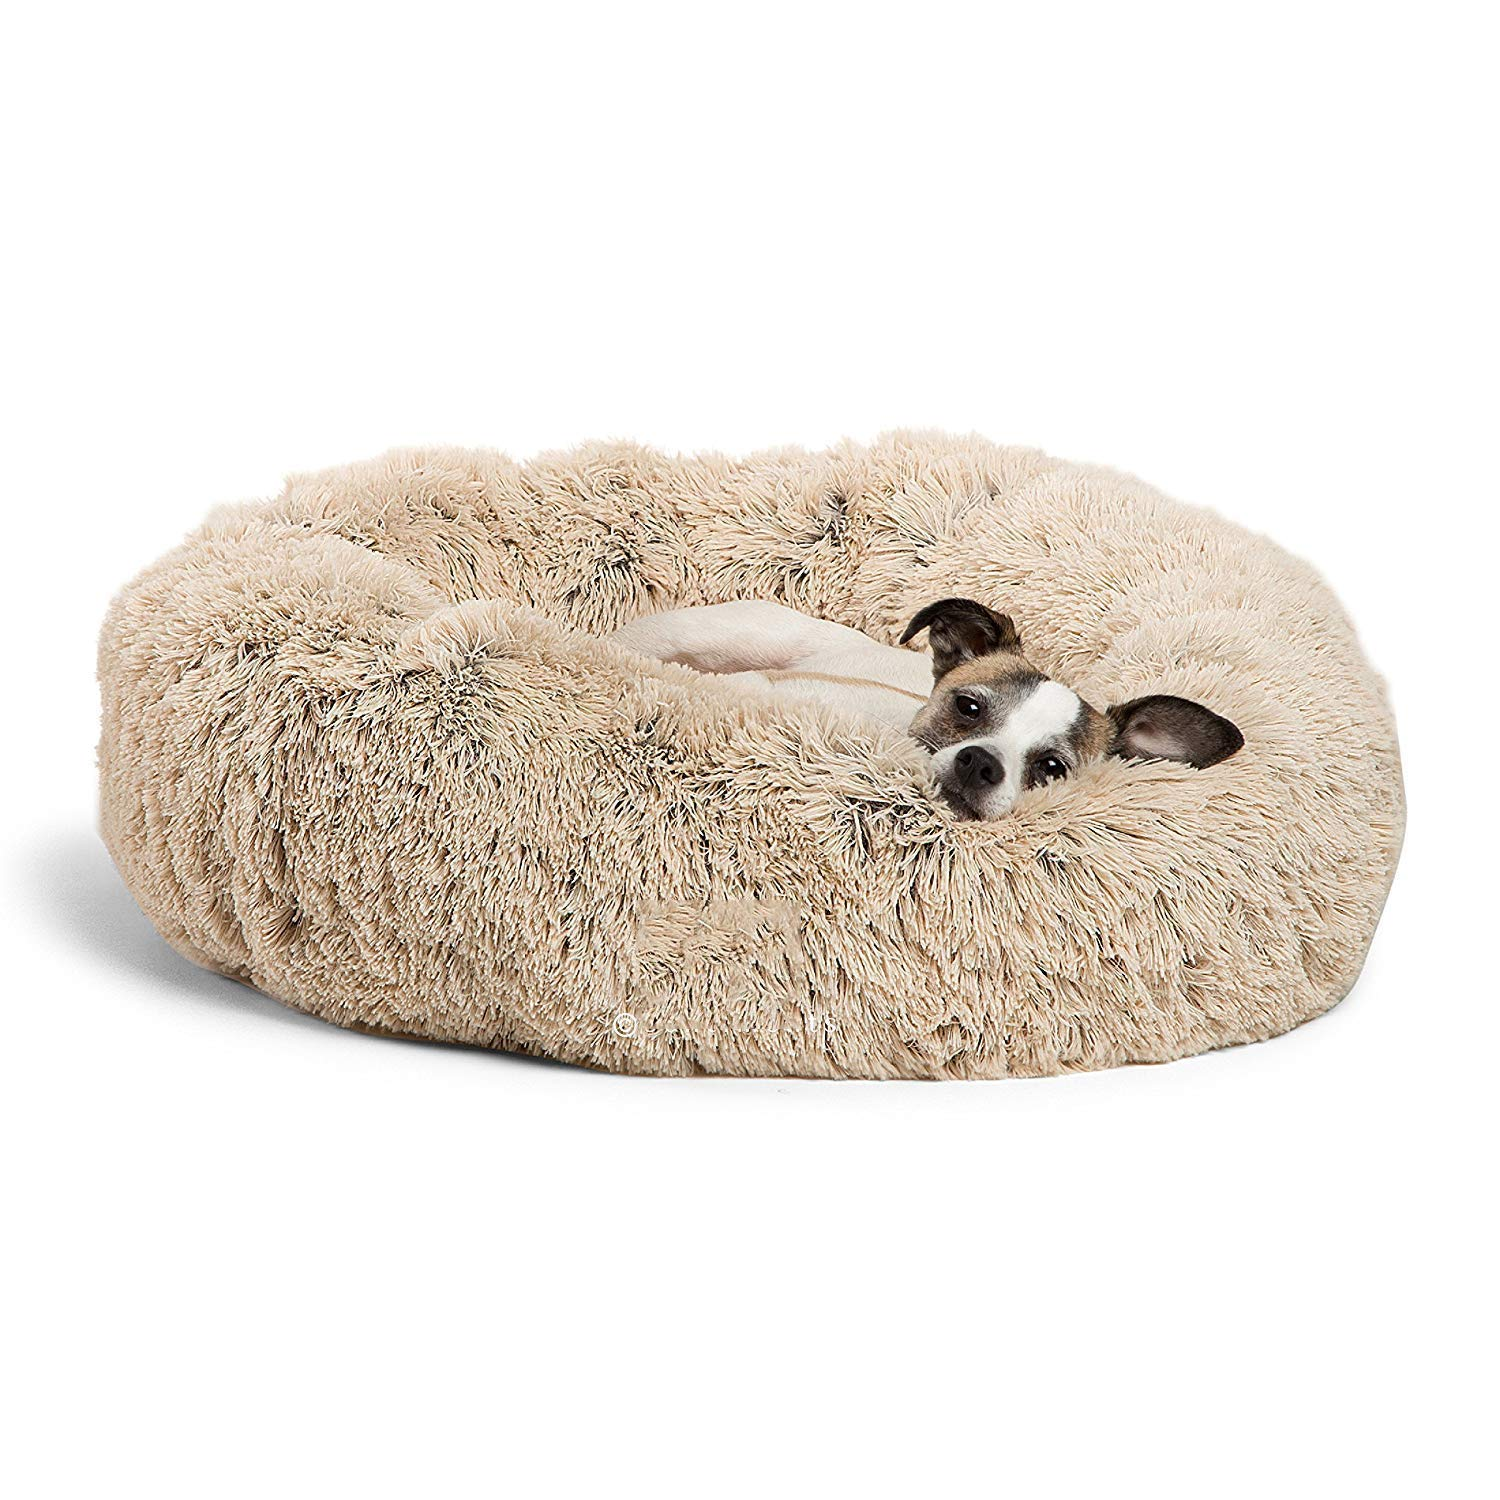 XLBHSH Fluffy Faux Fur Dog Bed Sofa Donut Calming Pet Bed Cushion Snuggly Pet for Small Medium Large and Extra Large Dog&Cats,80cm by XLBHSH